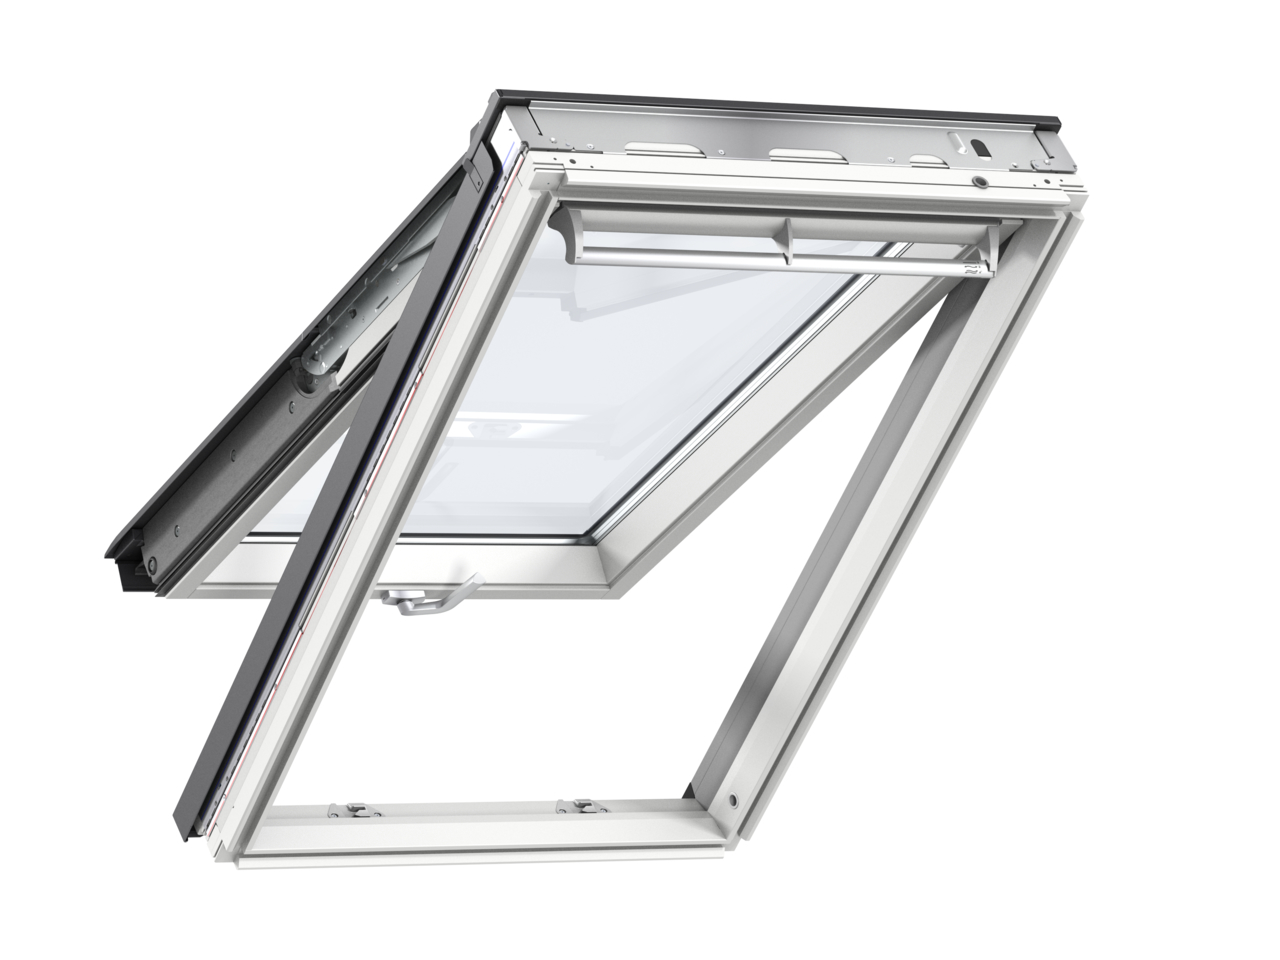 Velux GPL CK04 550 x 980mm Top Hung 60Pane Roof Window - White Painted